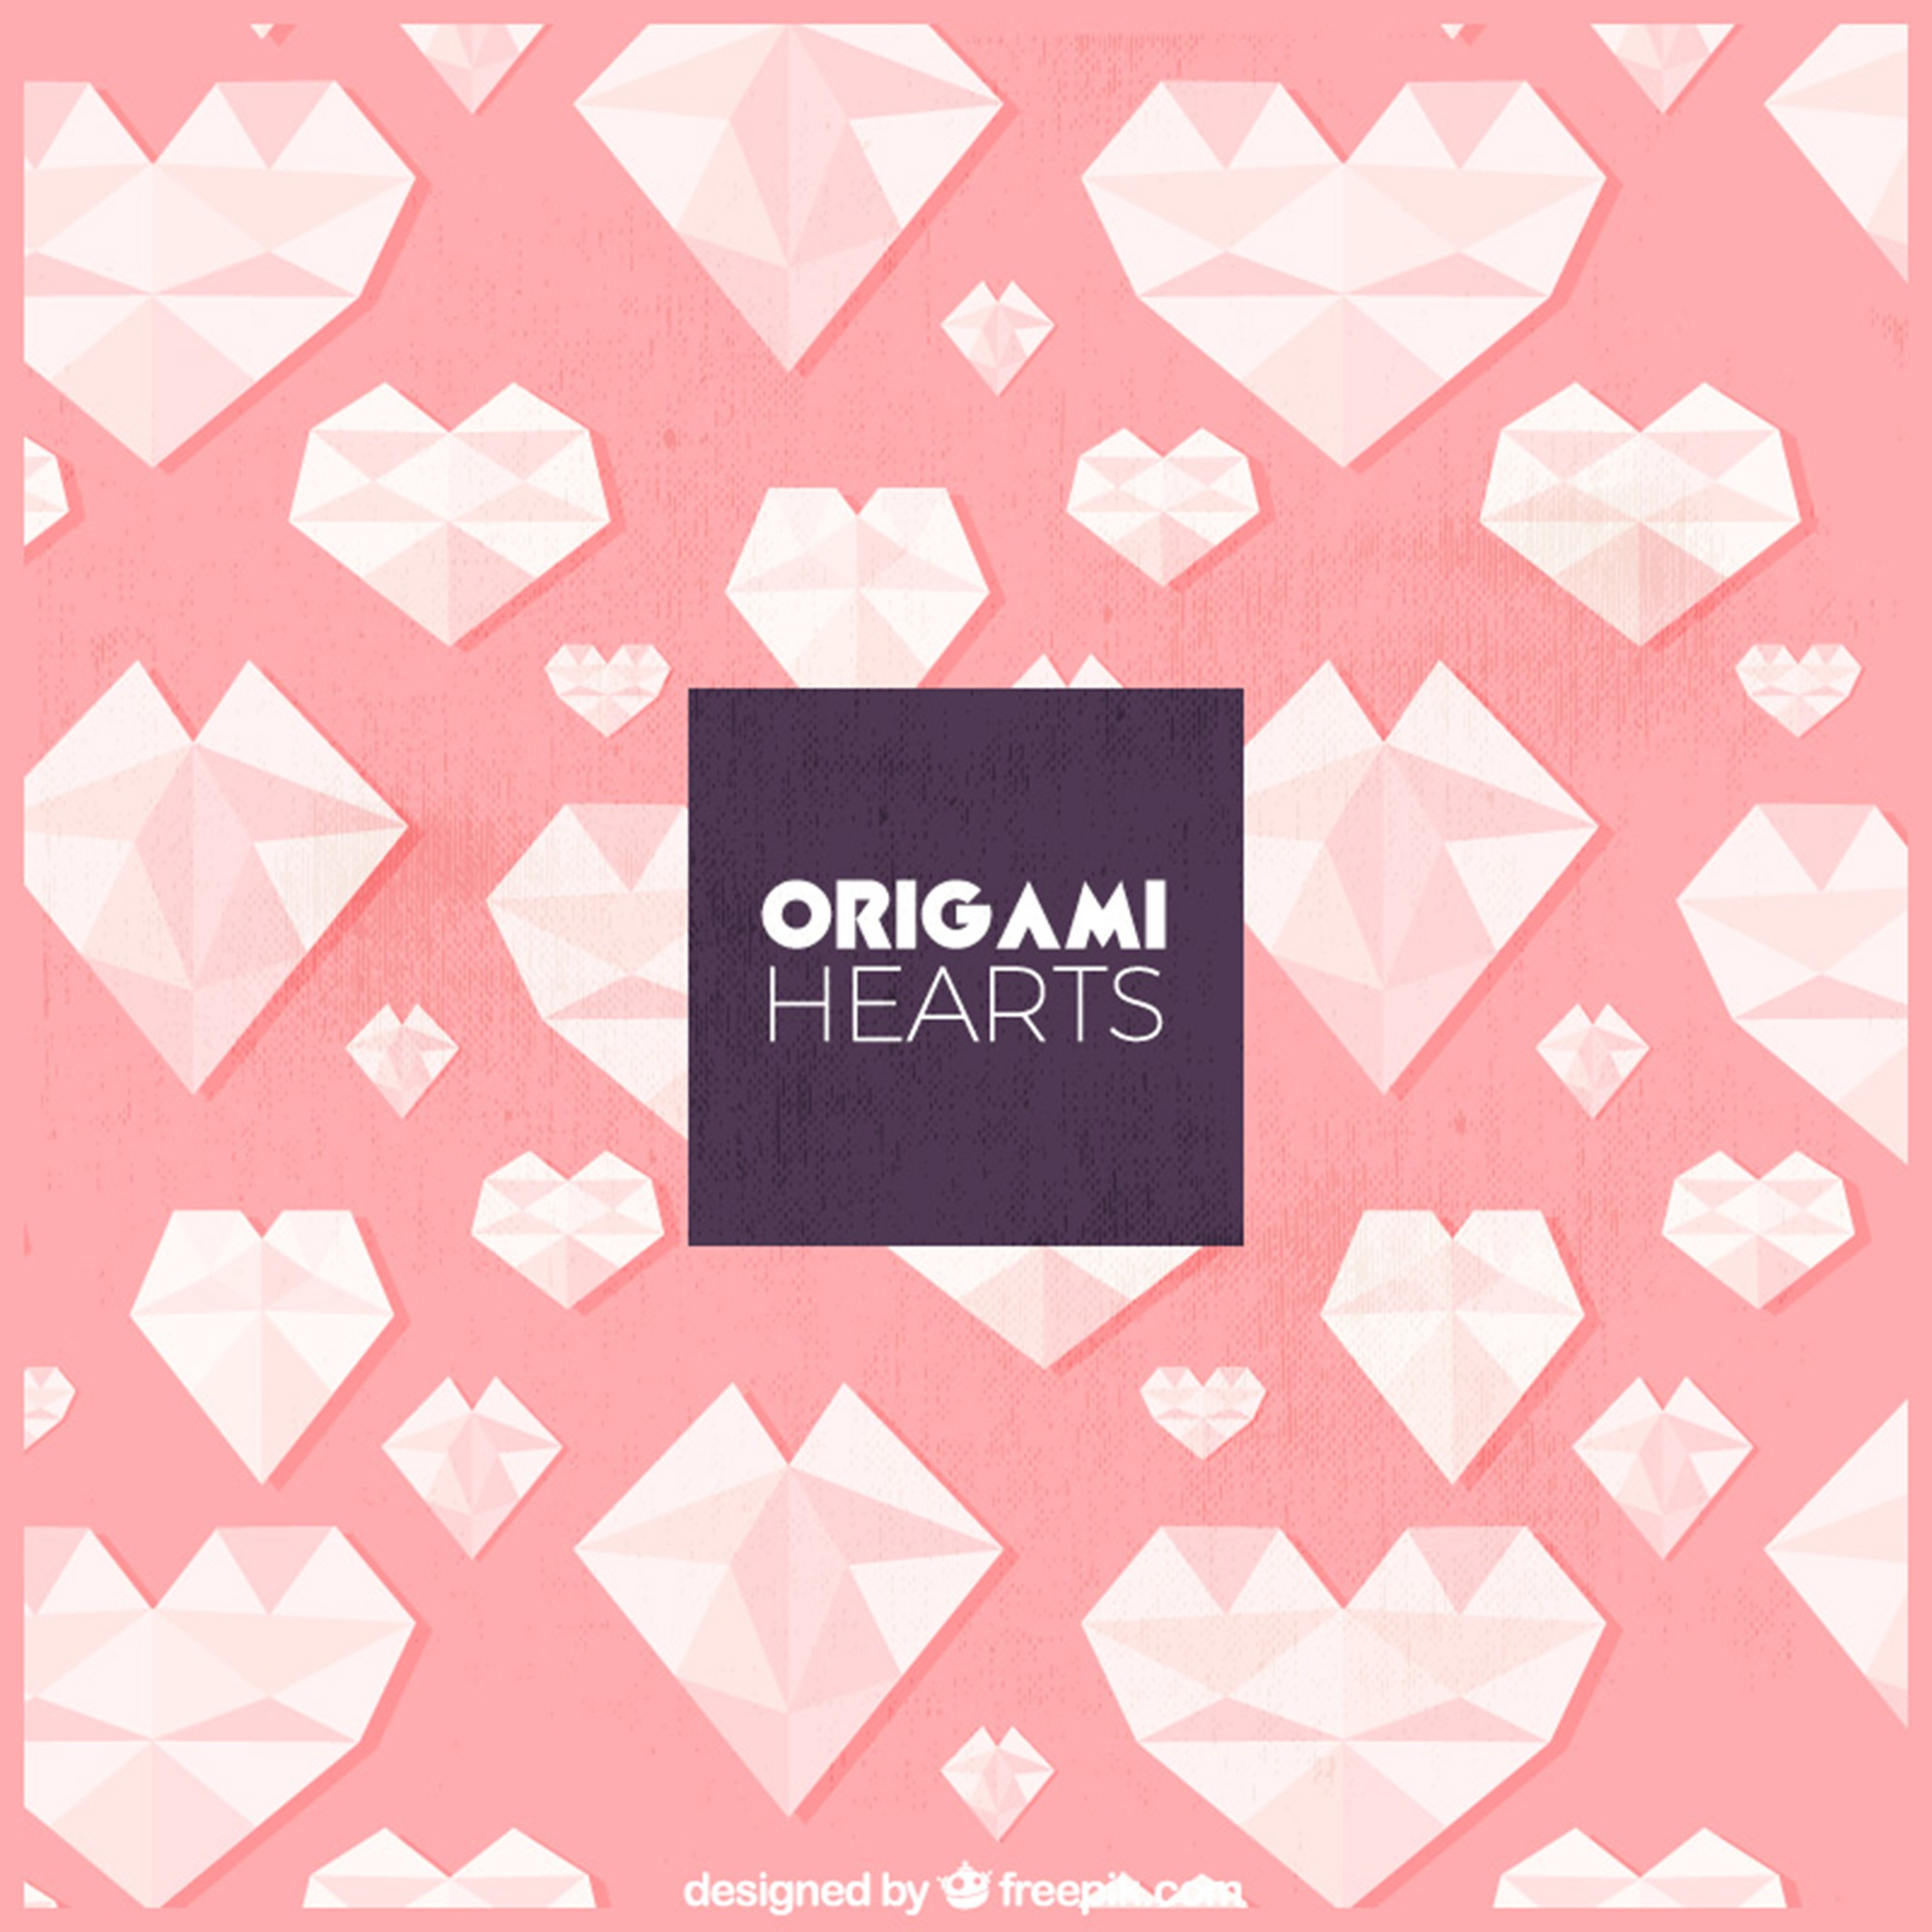 Origami hearts background